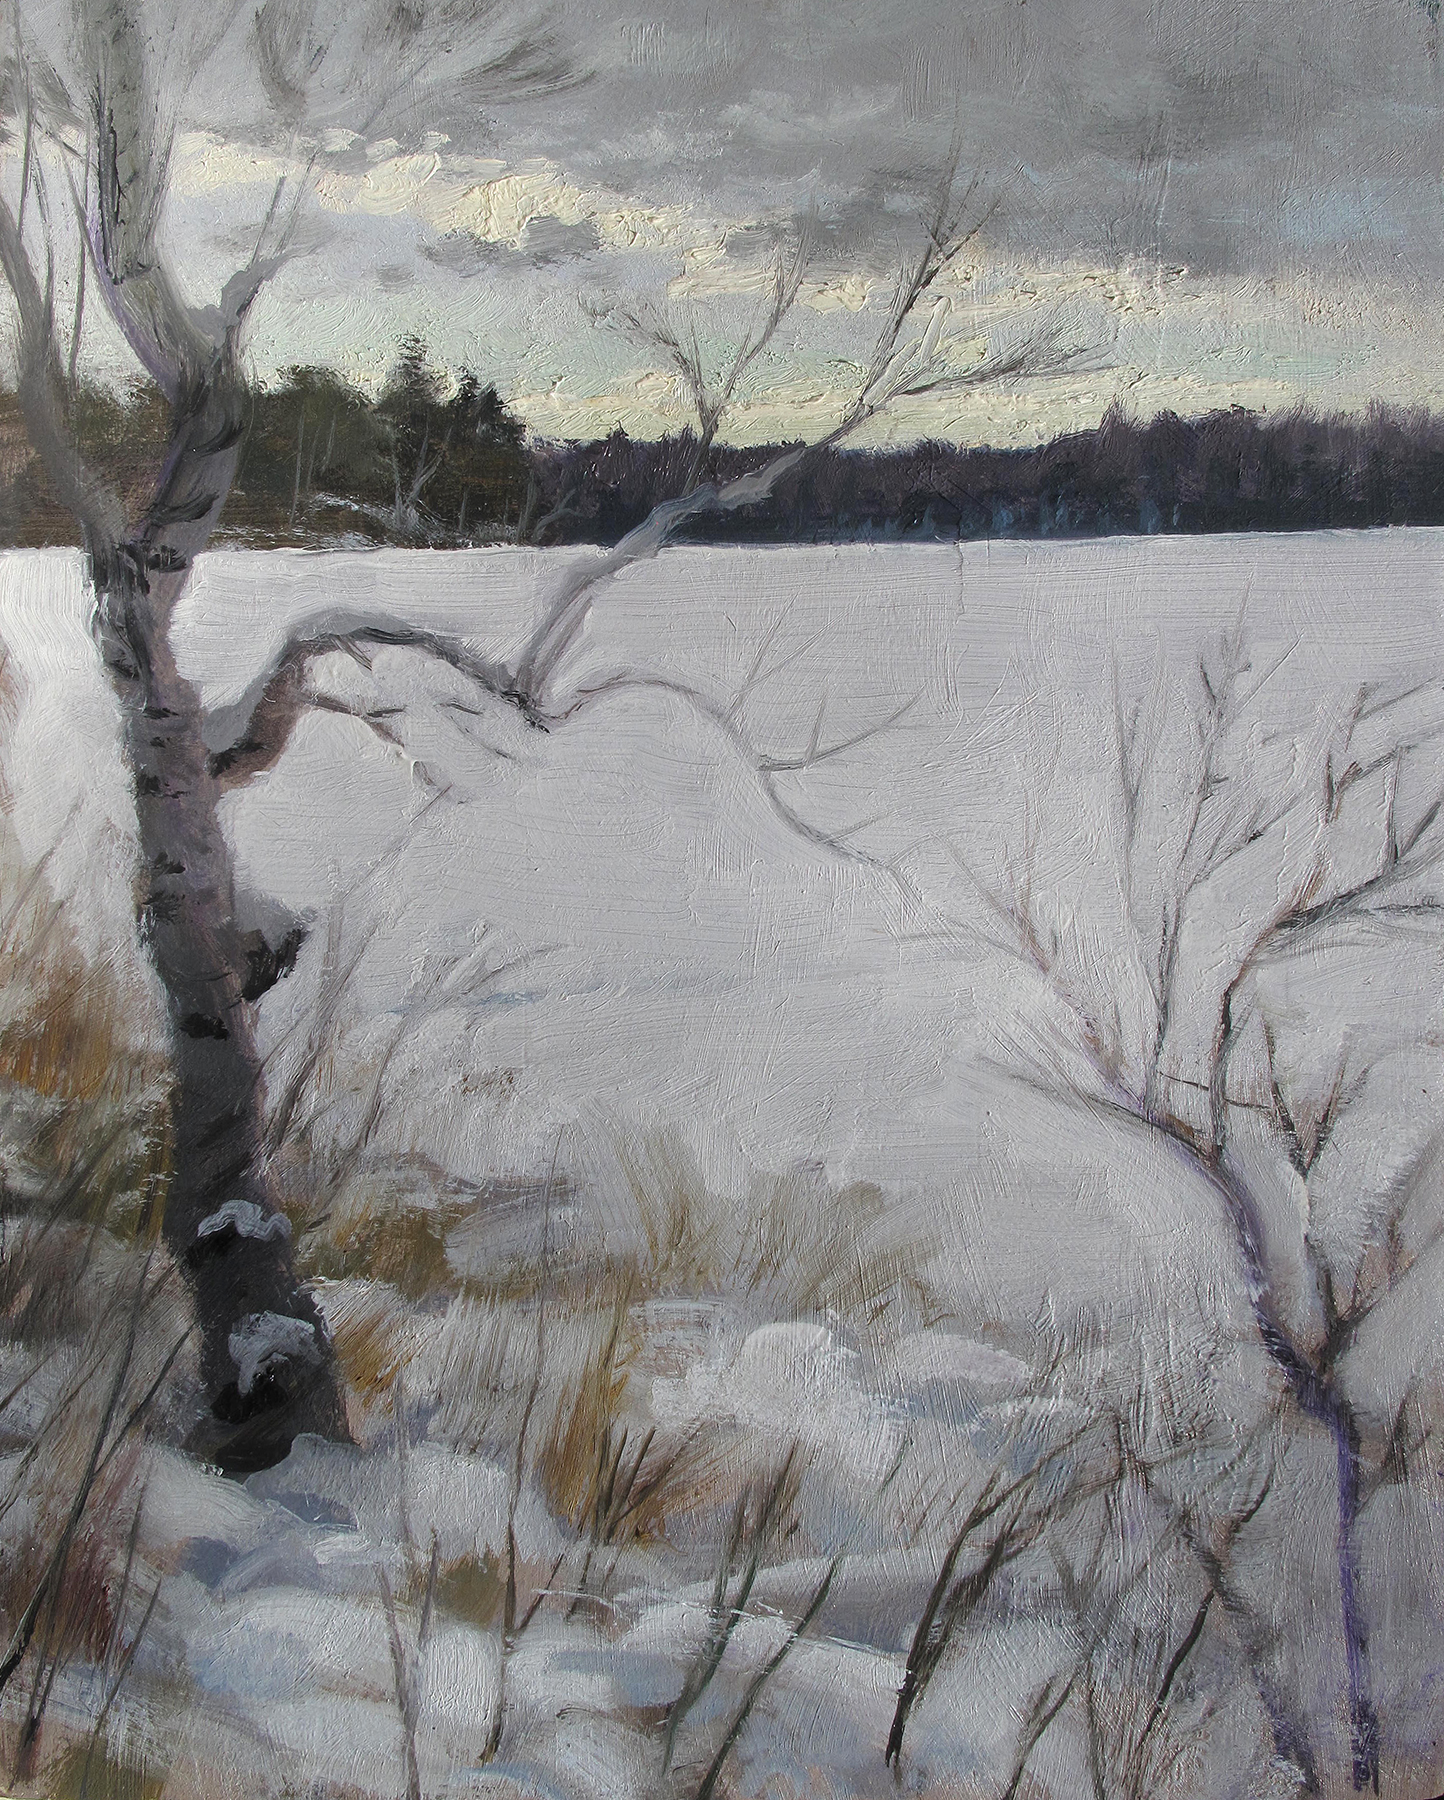 Winter Shoreline,  10 x 8, oil on panel